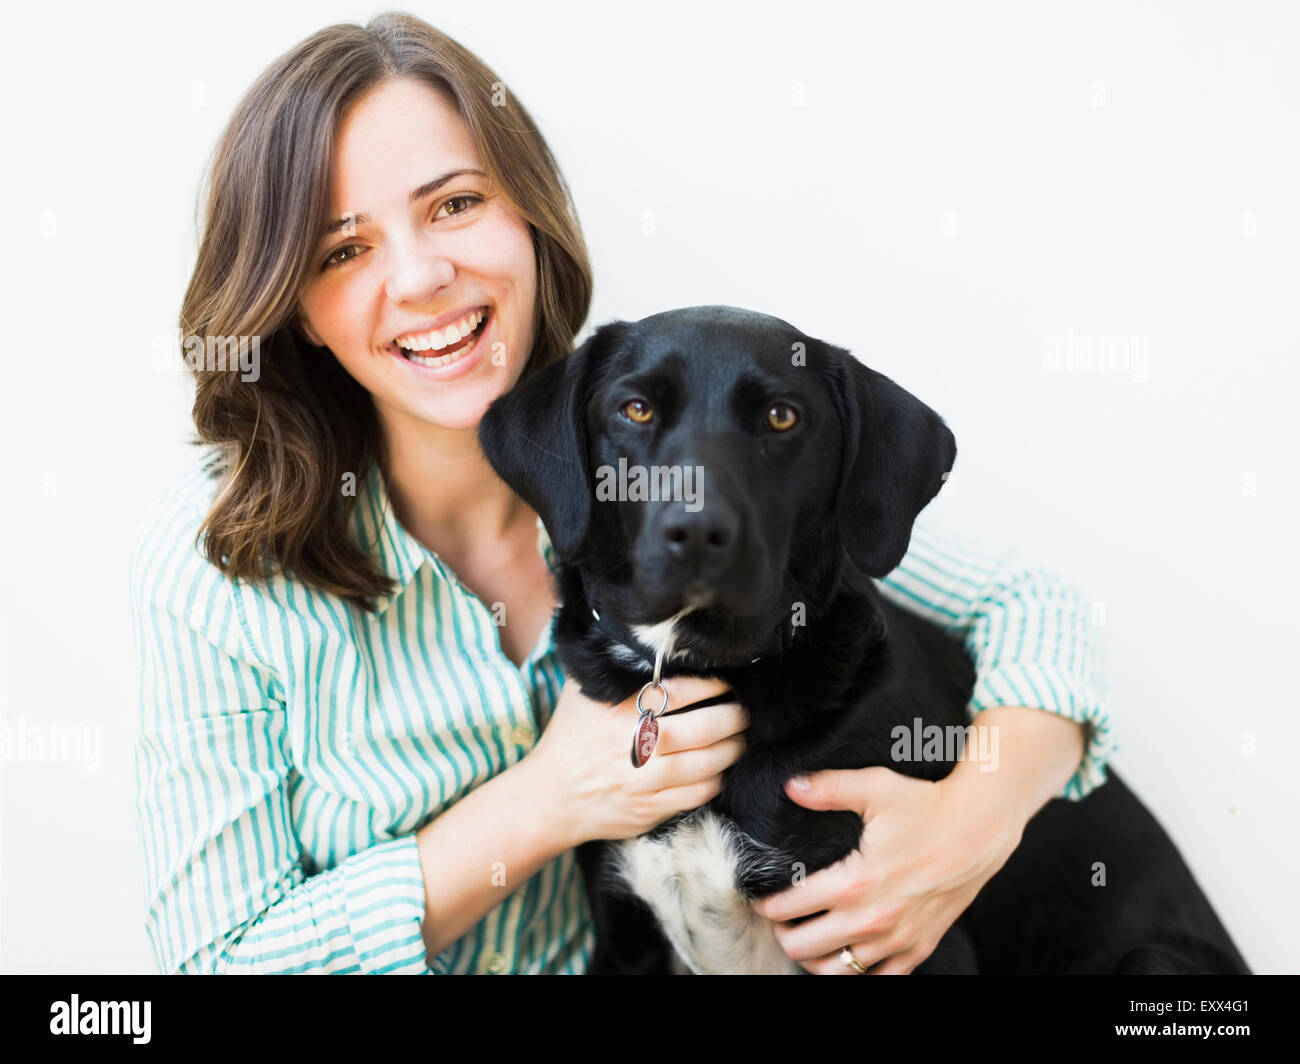 Portrait of smiling woman with dog - Stock Image